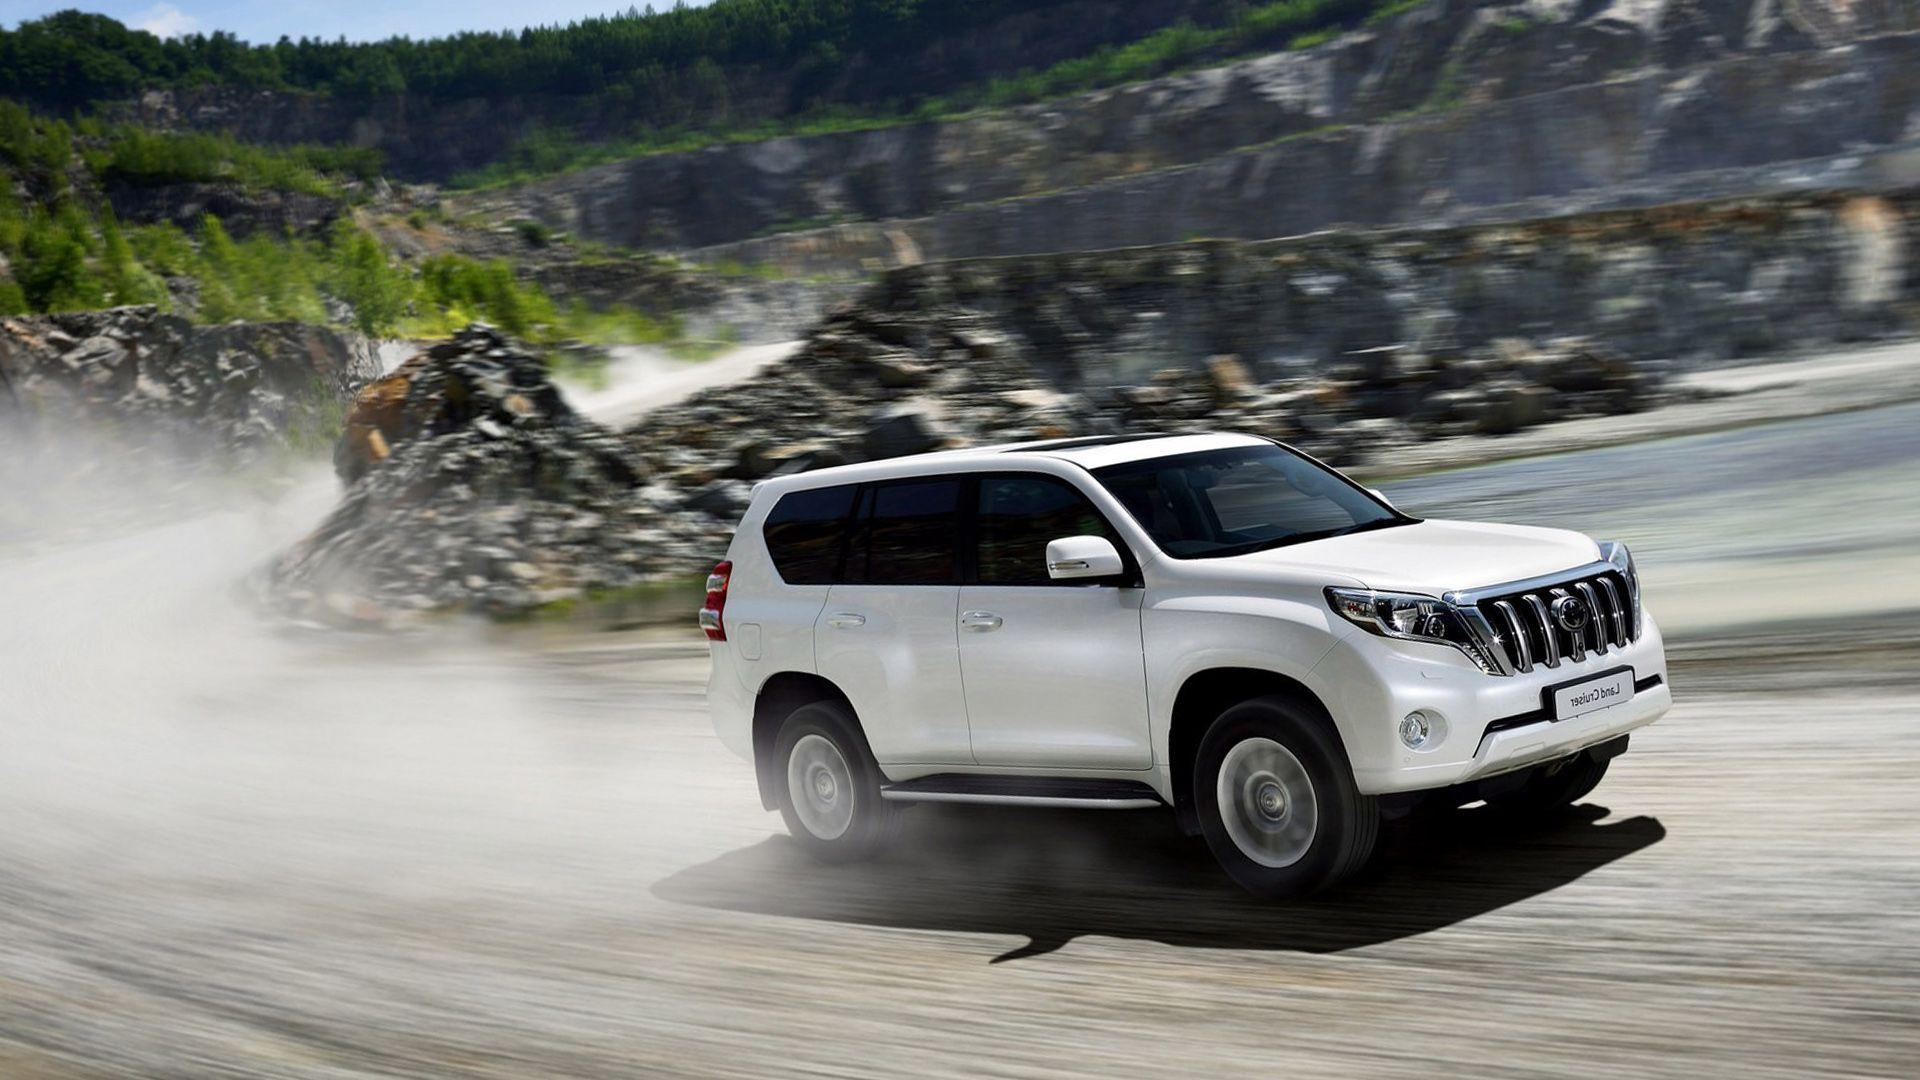 New 2016 Toyota Land Cruiser Wallpapers